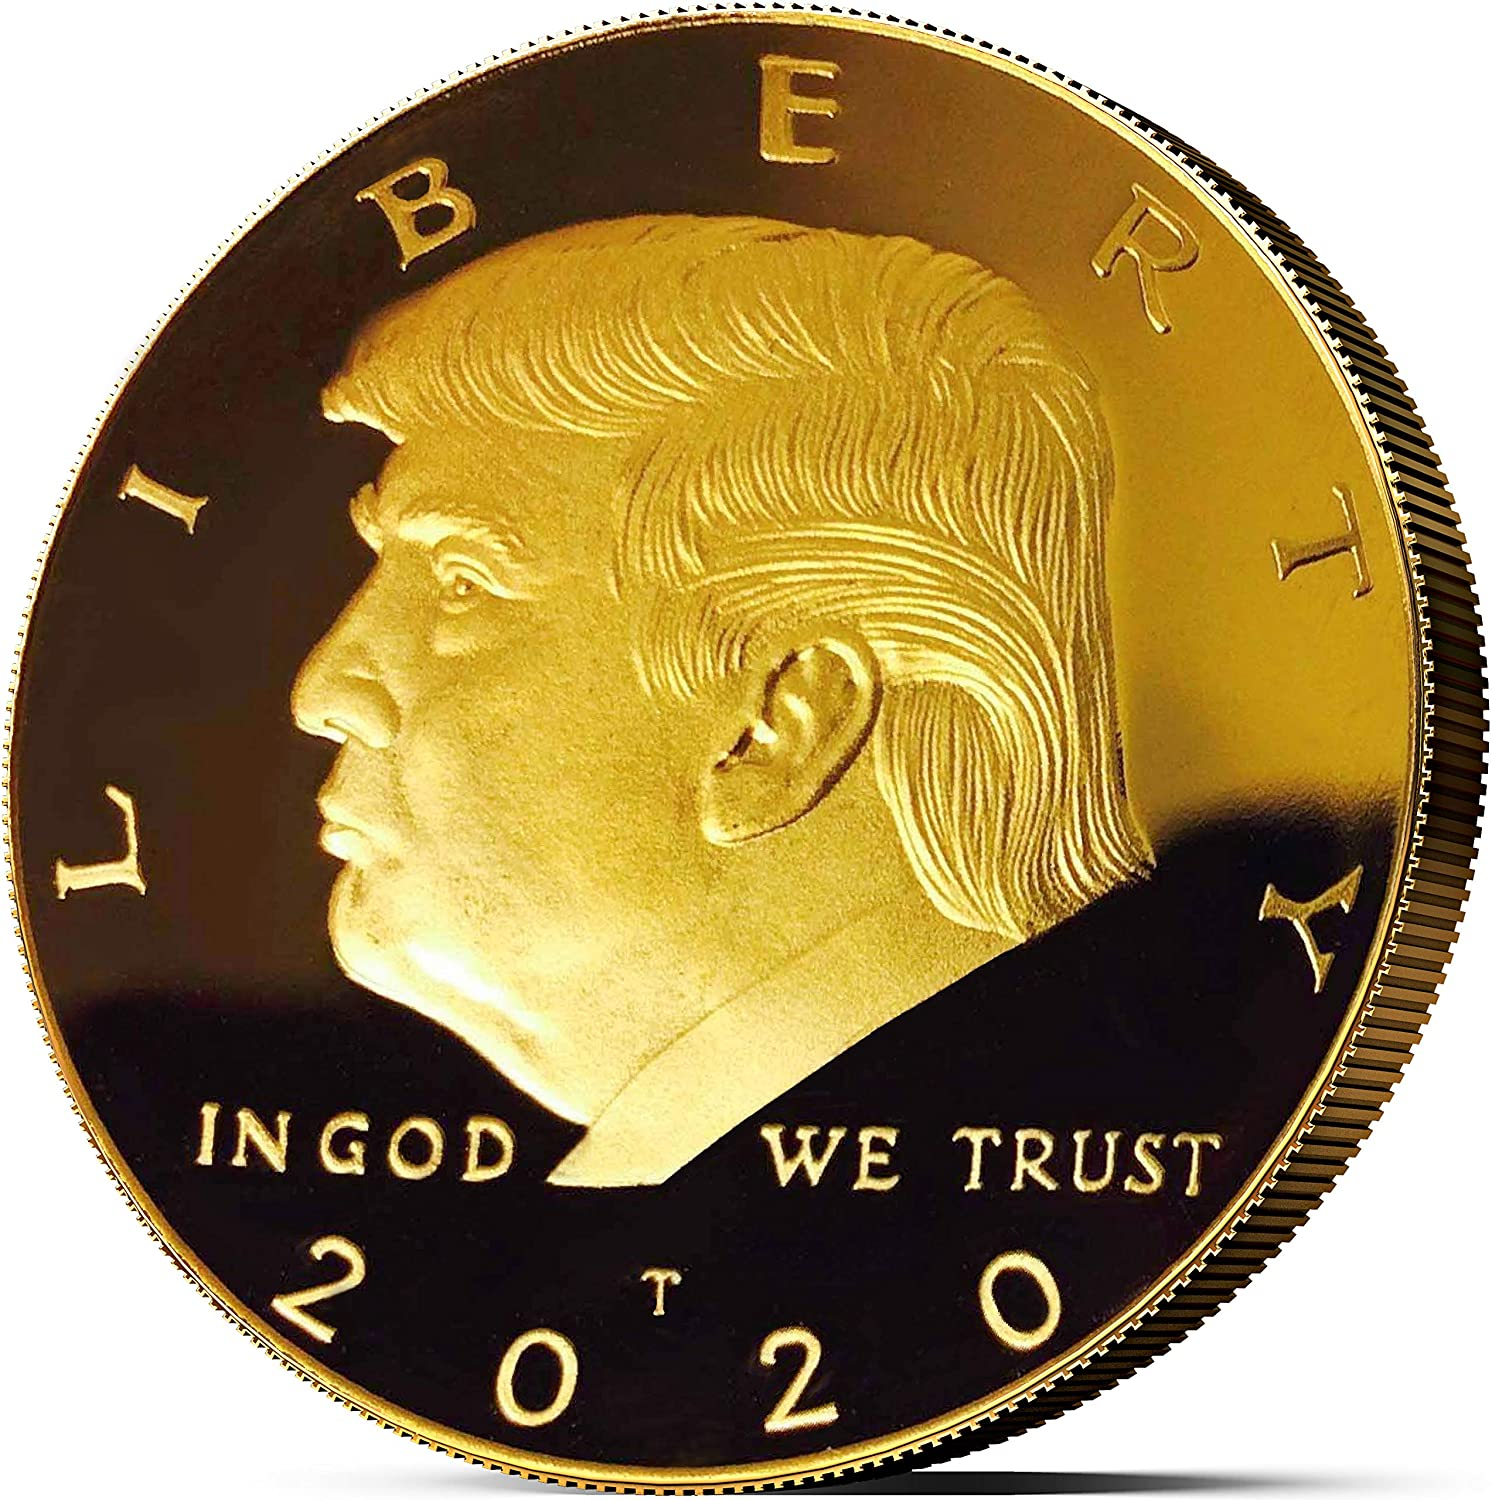 Donald Trump Coin 2020 Gold Plated Collectible Coin Protective Case Included Re Election Gift Show Your Support To Keep America Great Toys Games